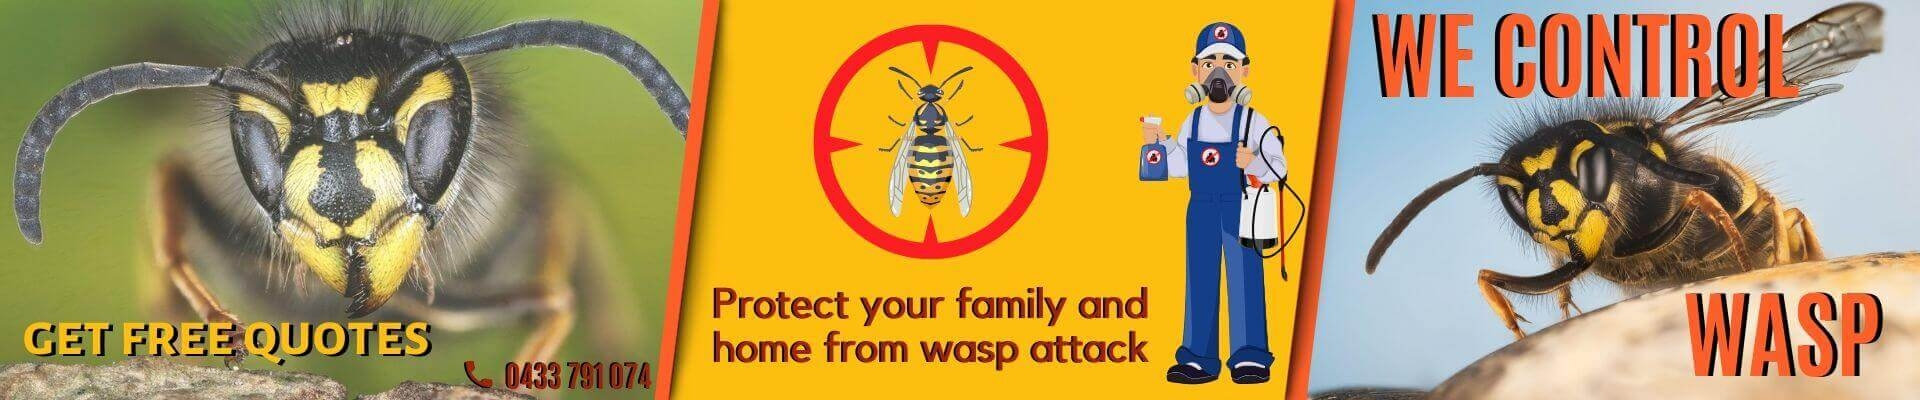 Wasp Removal Melbourne (@waspremovalau) Cover Image